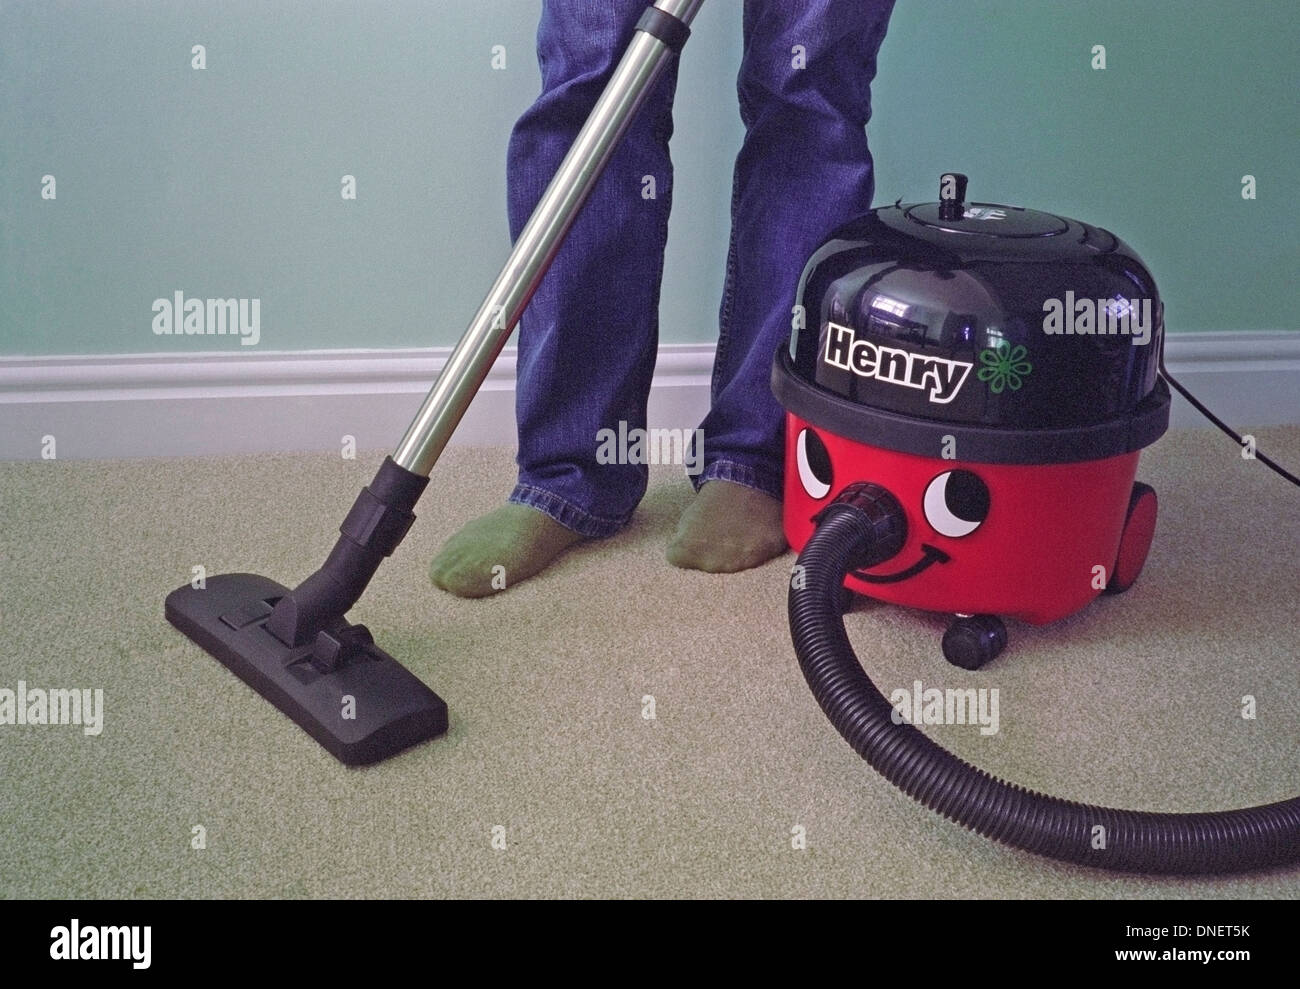 Caucasian Man Vacuuming A Carpet With Henry Vacuum Cleaner MODEL RELEASED